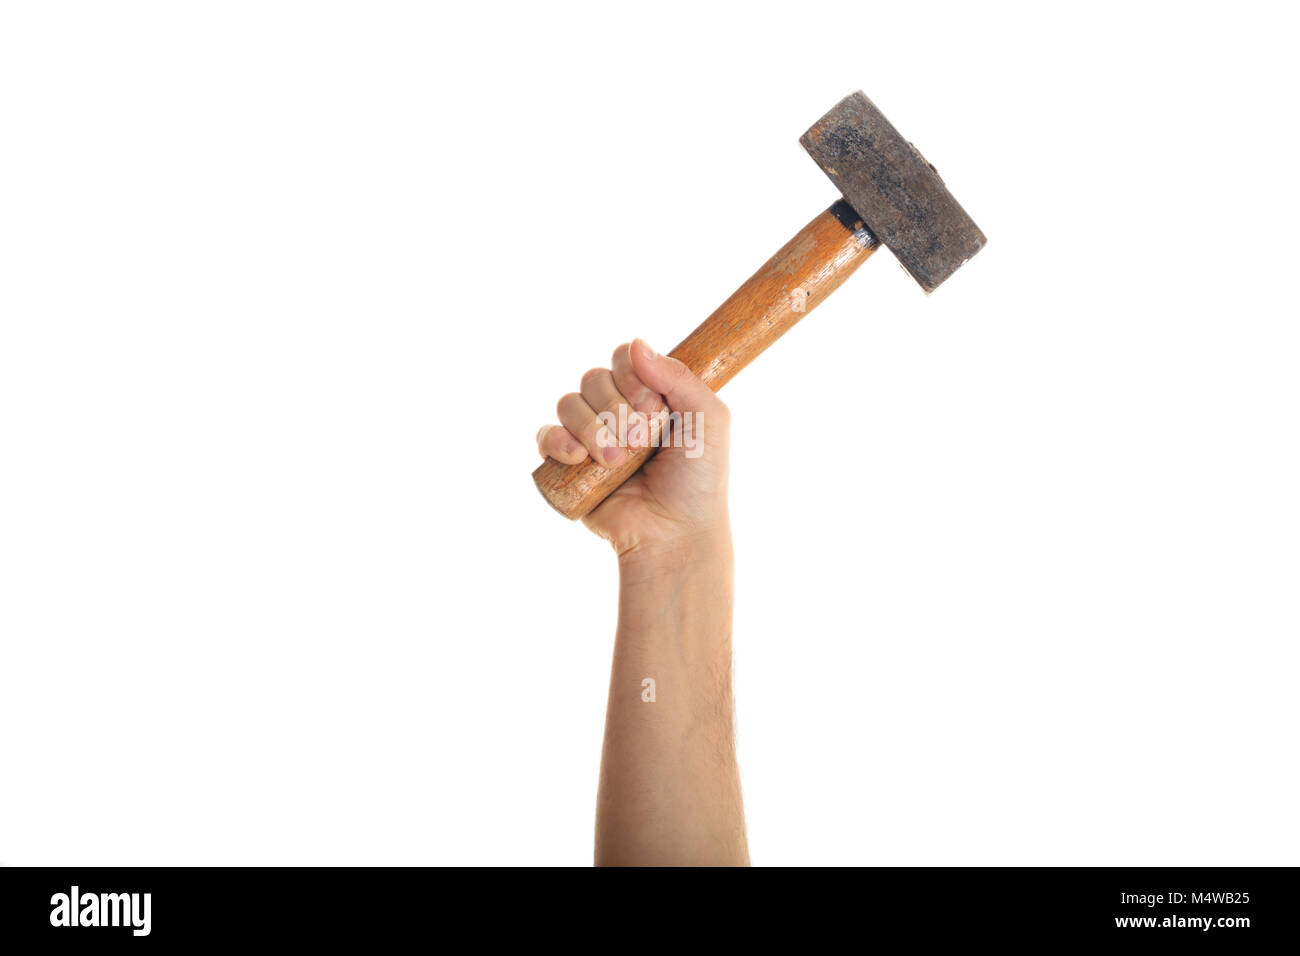 Hand holding an old vintage hammer hand tool isolated on white background - Stock Image